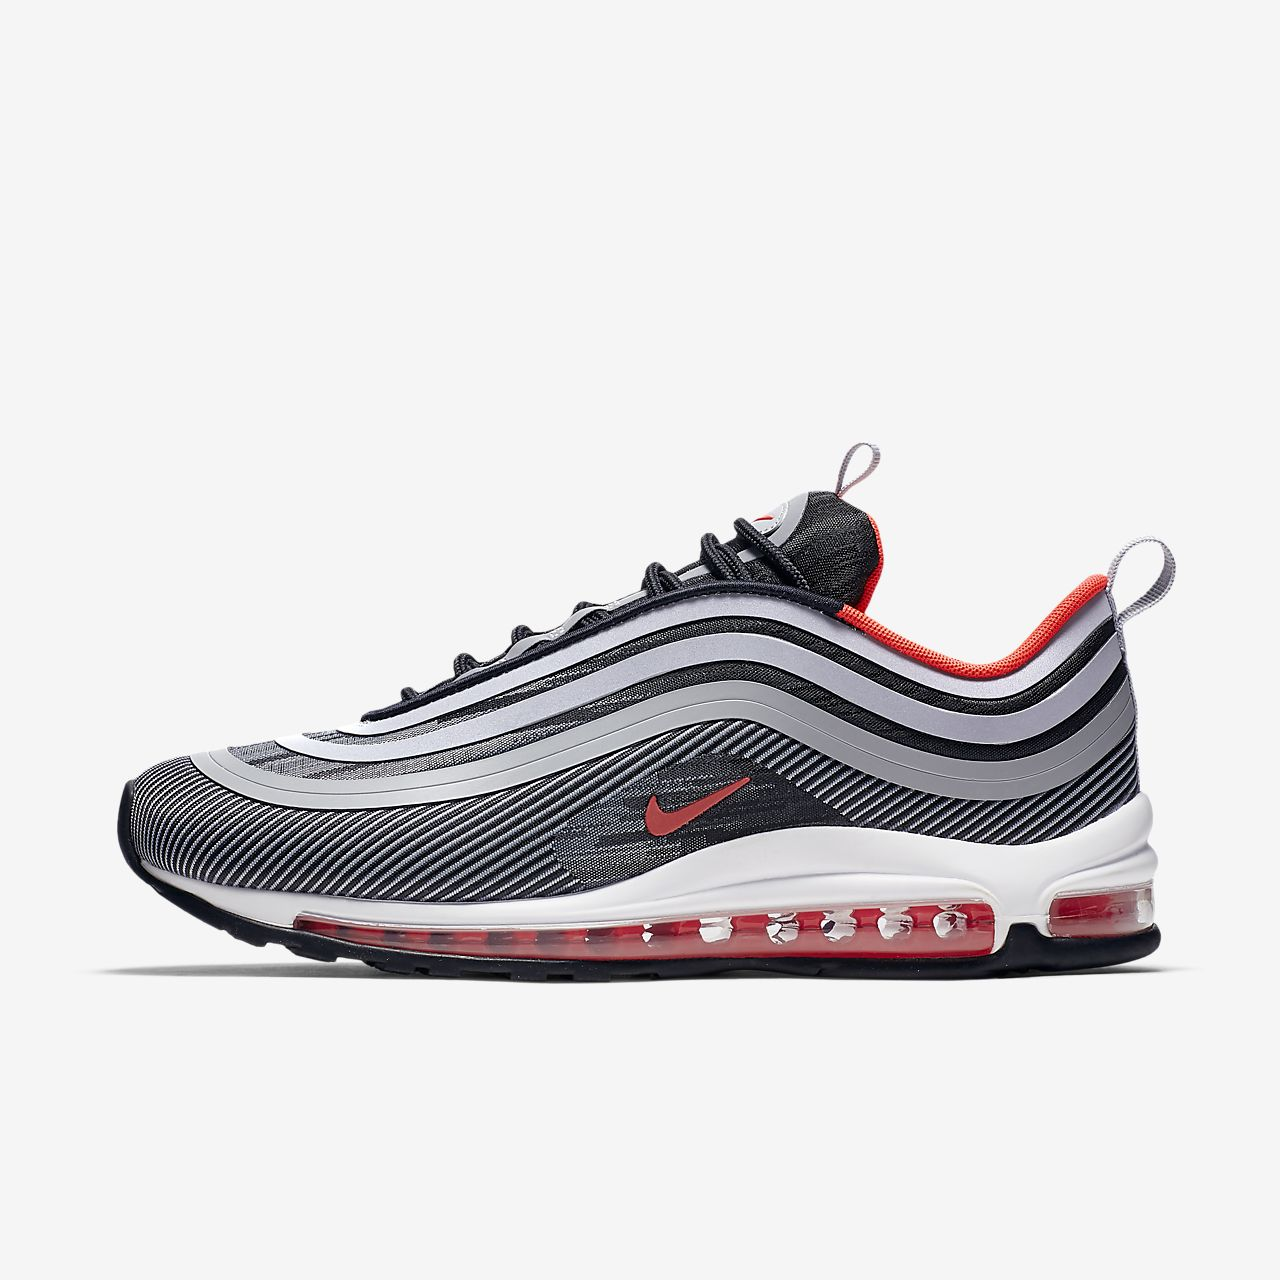 7fe16945b9 Nike Air Max 97 Ultra '17 Men's Shoe. Nike.com ID